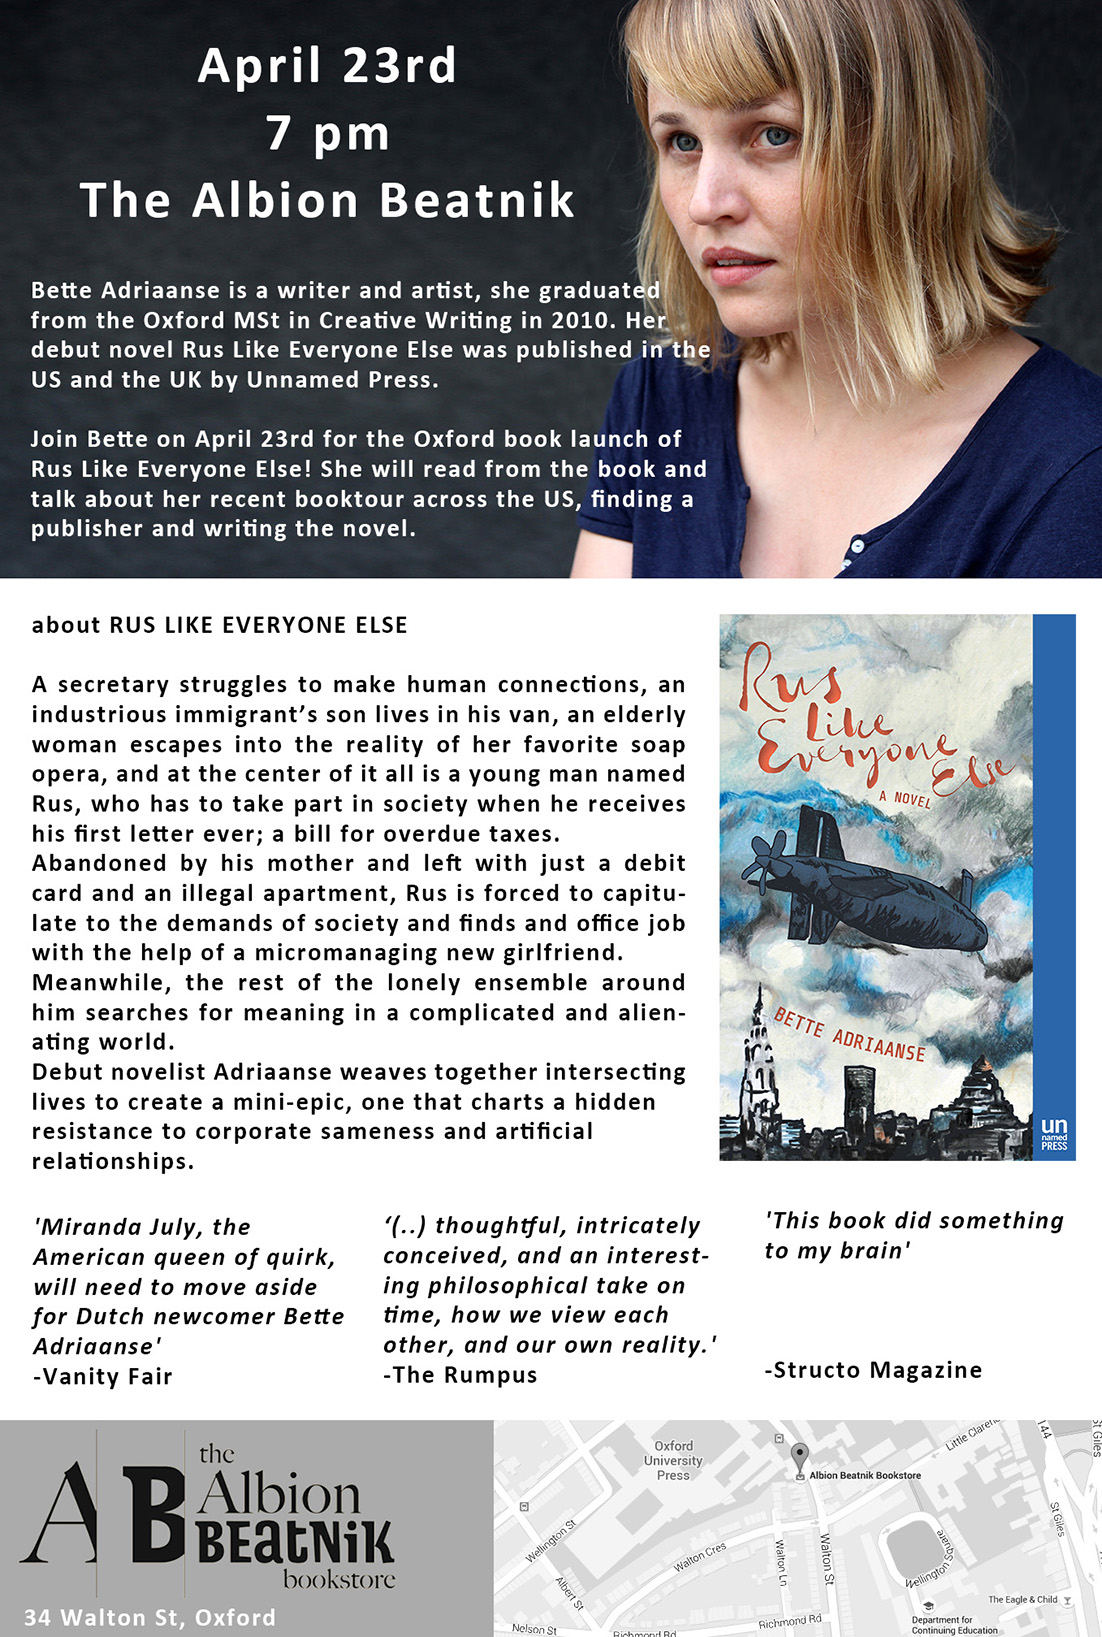 creative writing magazines uk Supplier power conducts deep research about the on boarding and supplier credentialing techniques of the fortune 1000 so you do not have to.